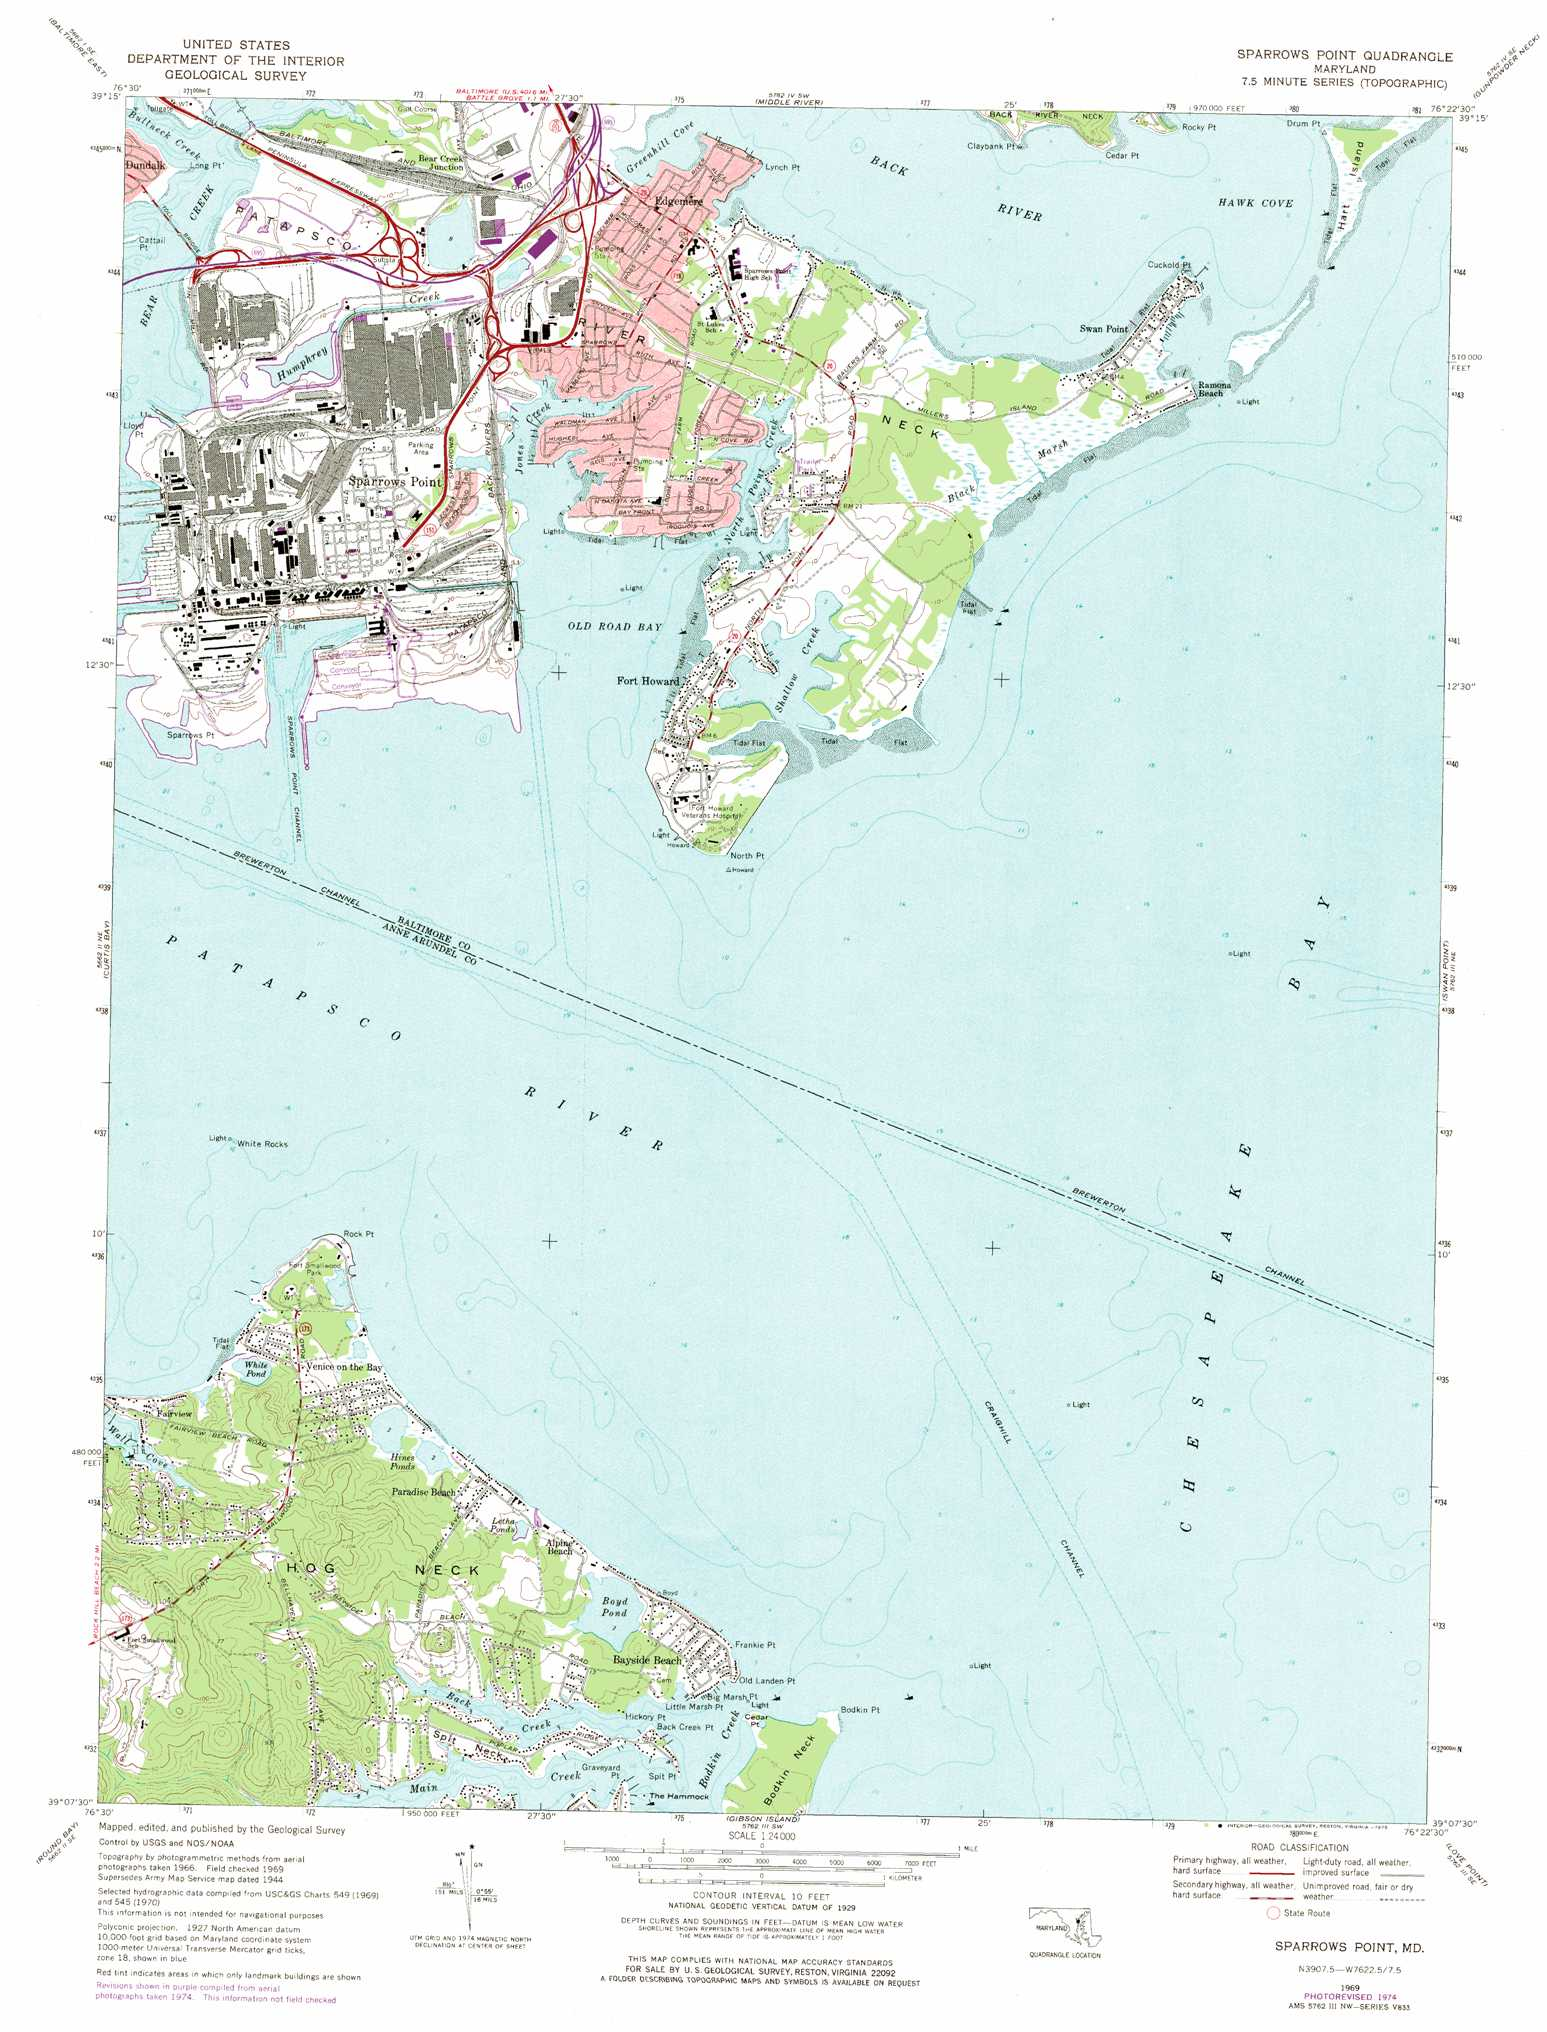 Sparrows Point Topographic Map MD  USGS Topo Quad 39076b4